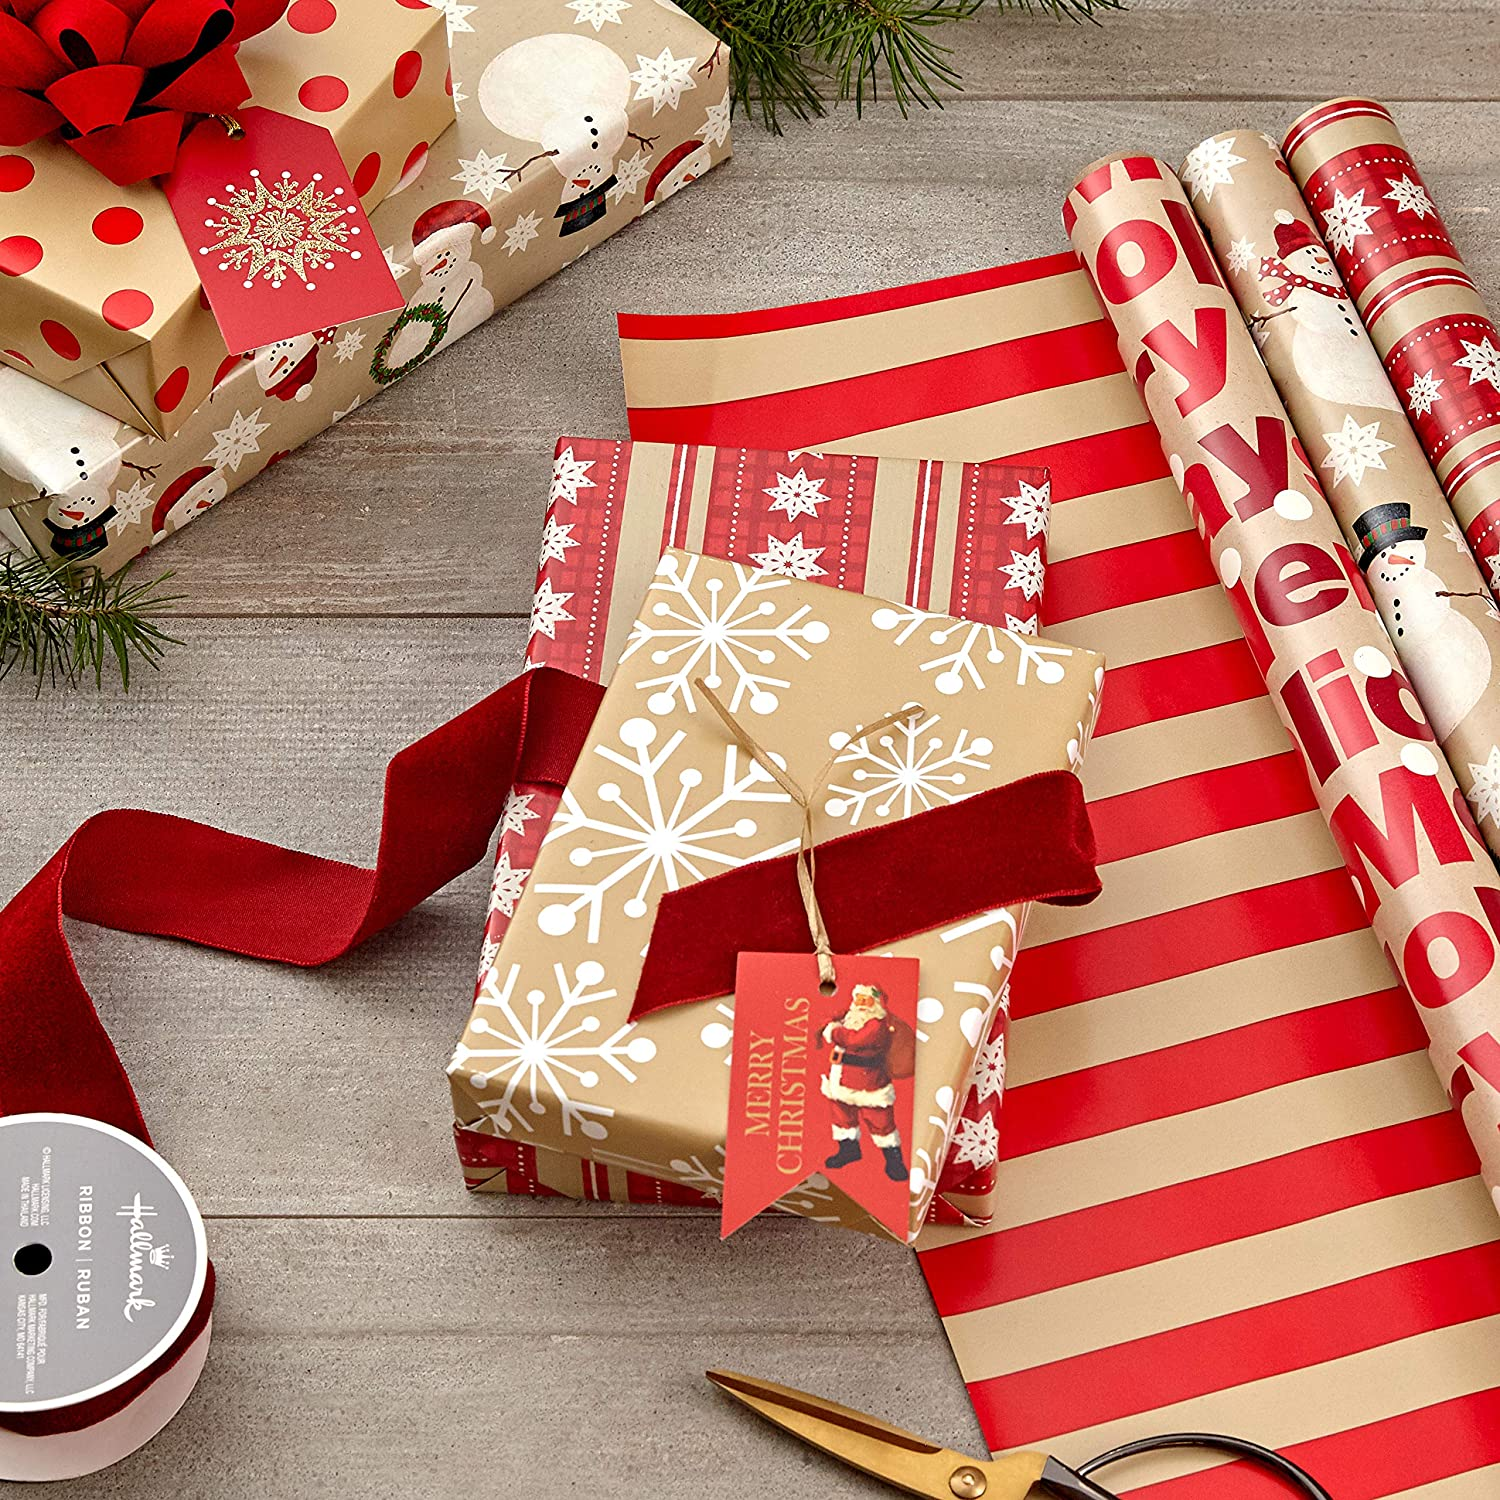 """Hallmark Reversible Christmas Wrapping Paper (3 Rolls: 120 sq. ft. ttl) """"Merry Holidays,"""" Snowflakes, Snowmen, Red Stripes : Everything Else"""